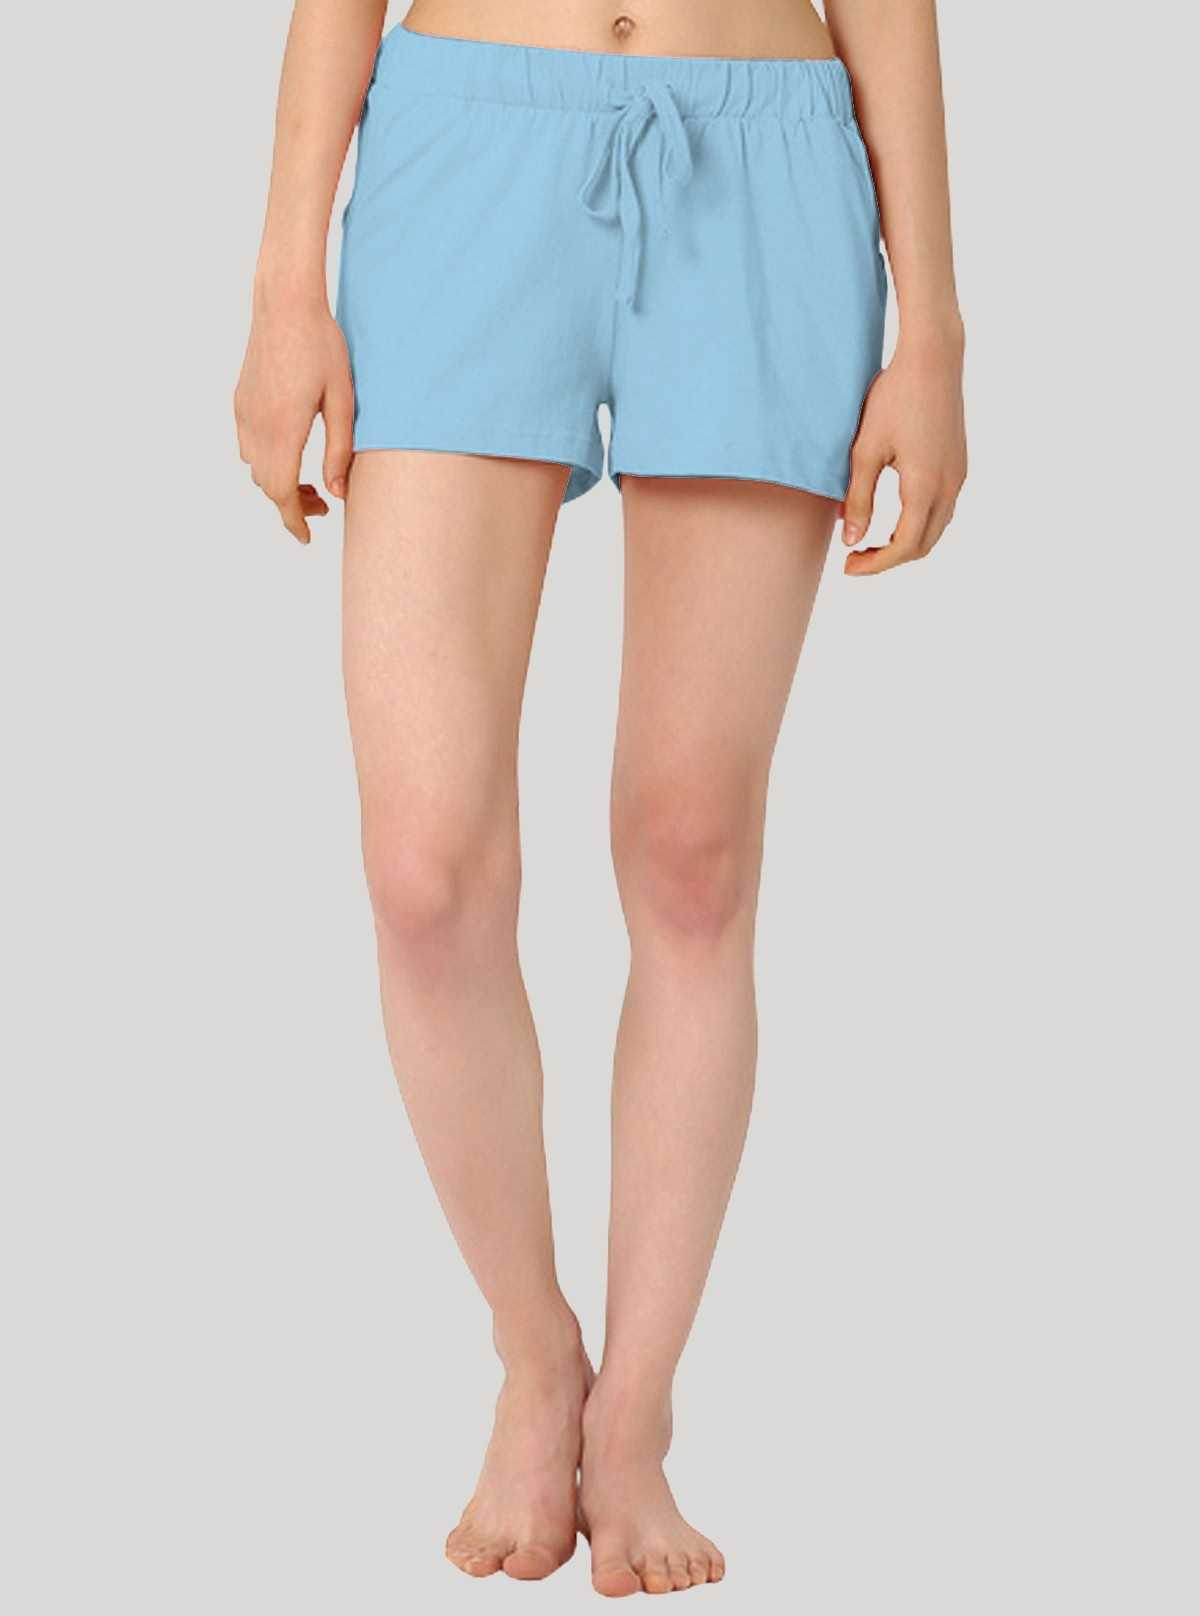 Sky Blue Womens Shorts